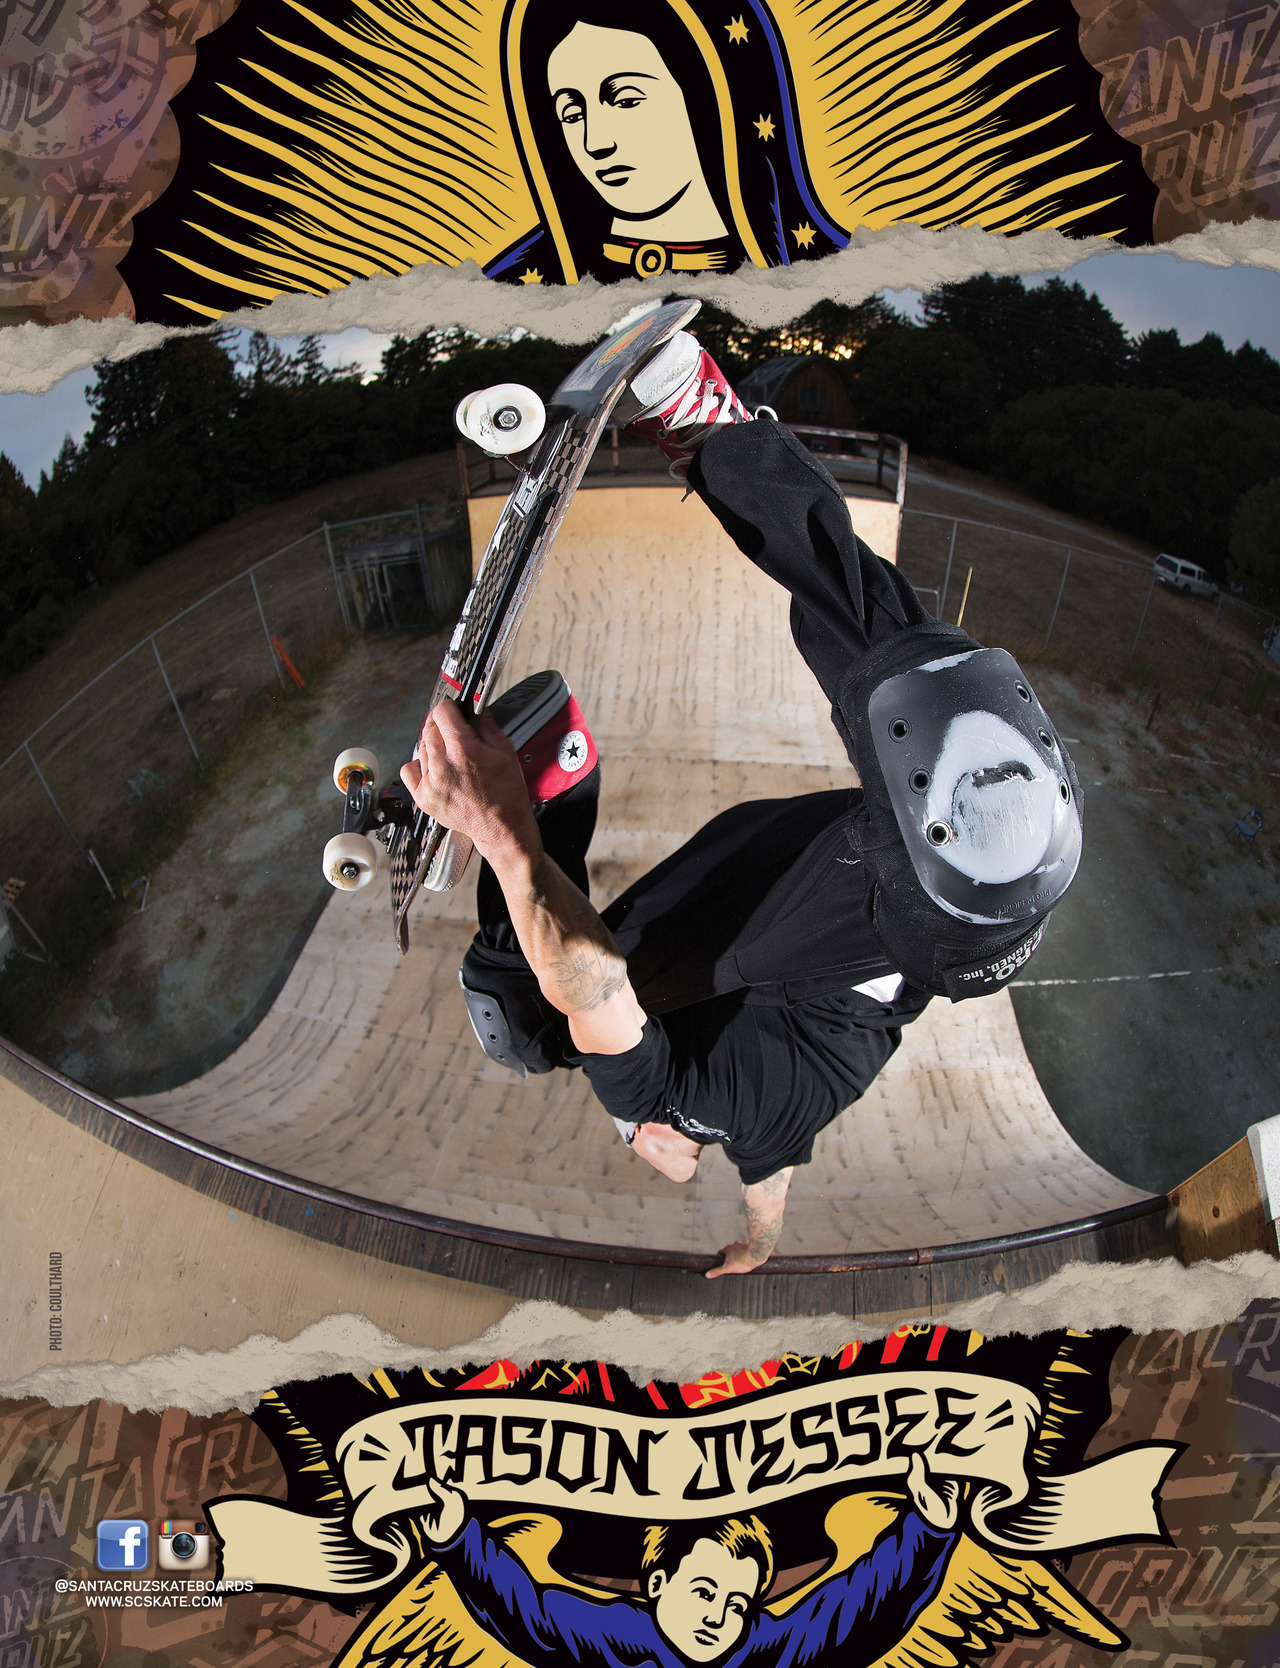 SANTA CRUZ SKATEBOARDS - J. JESSEE